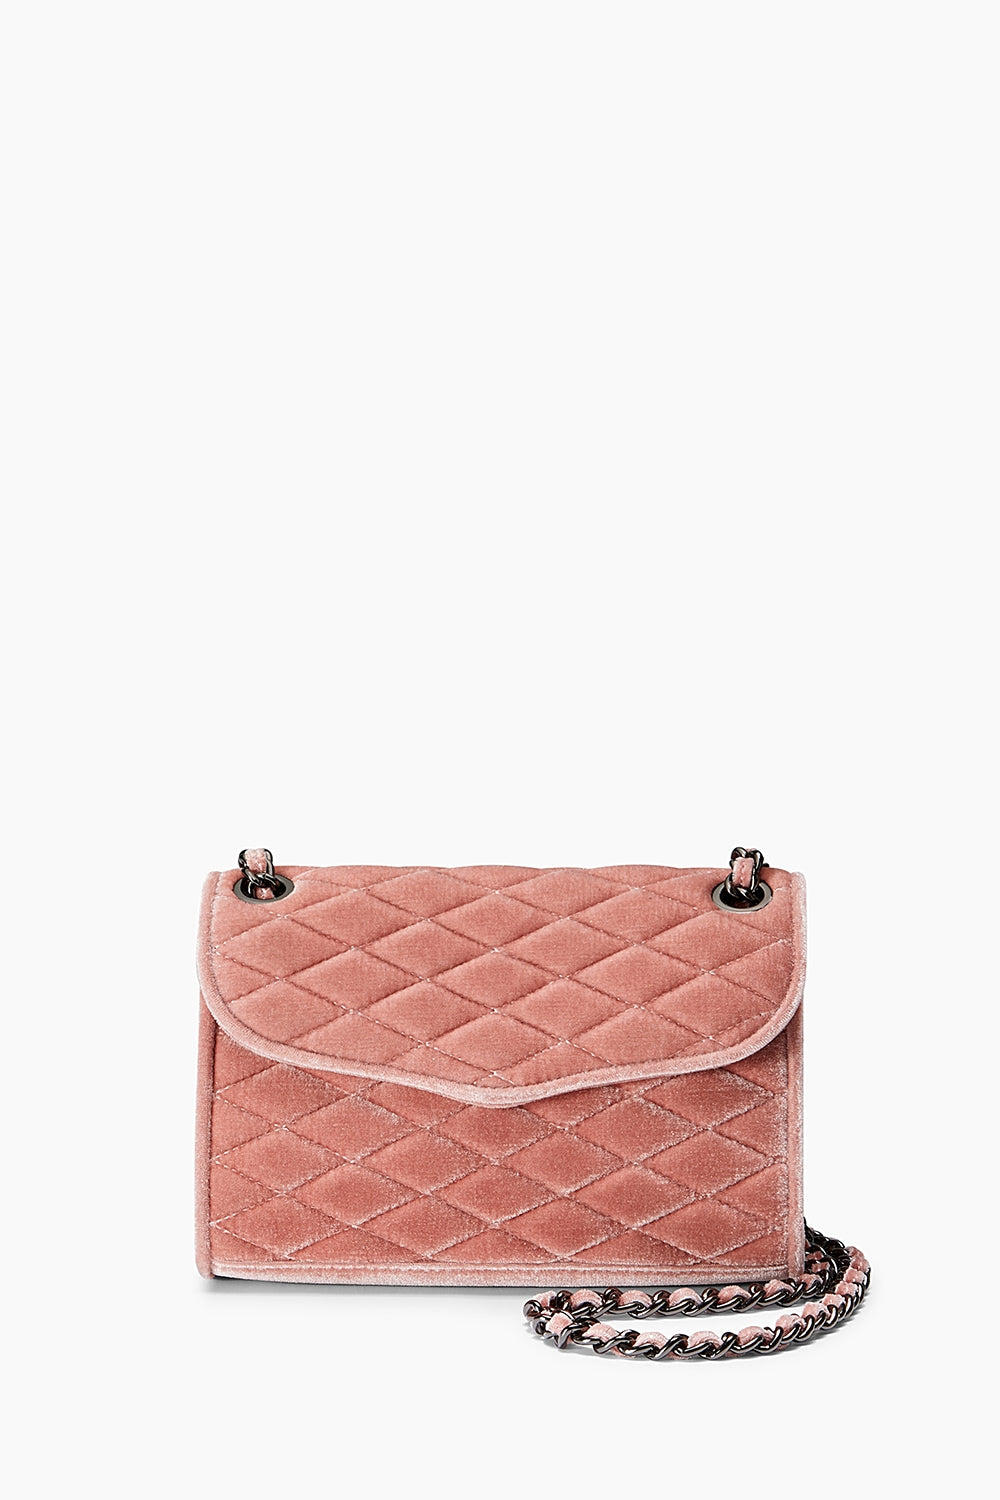 quilted mini rebecca body dealmoon minkoff affair quilt bag cross